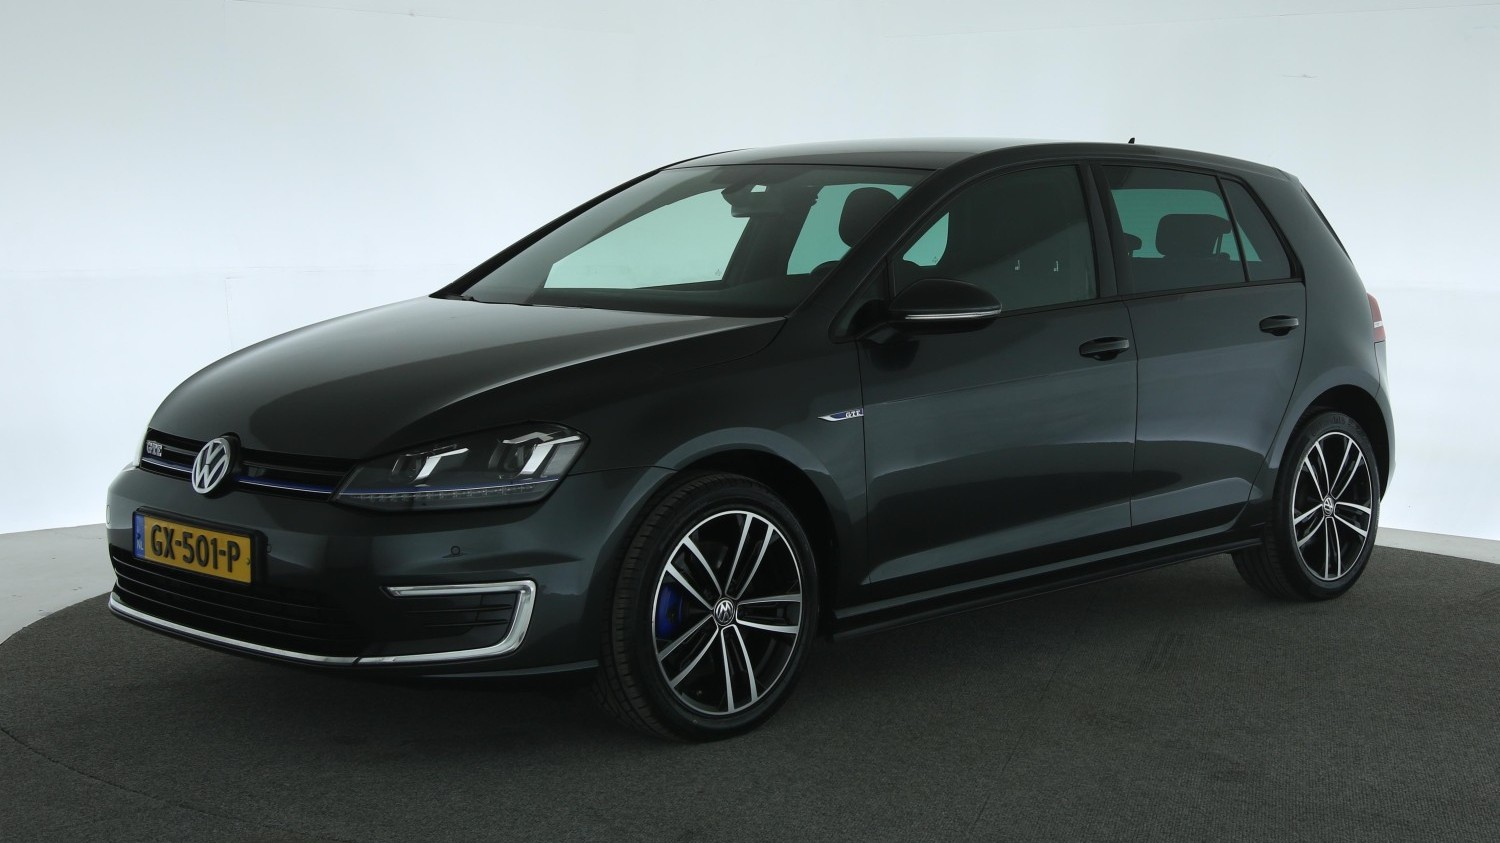 Volkswagen Golf Hatchback 2015 GX-501-P 1